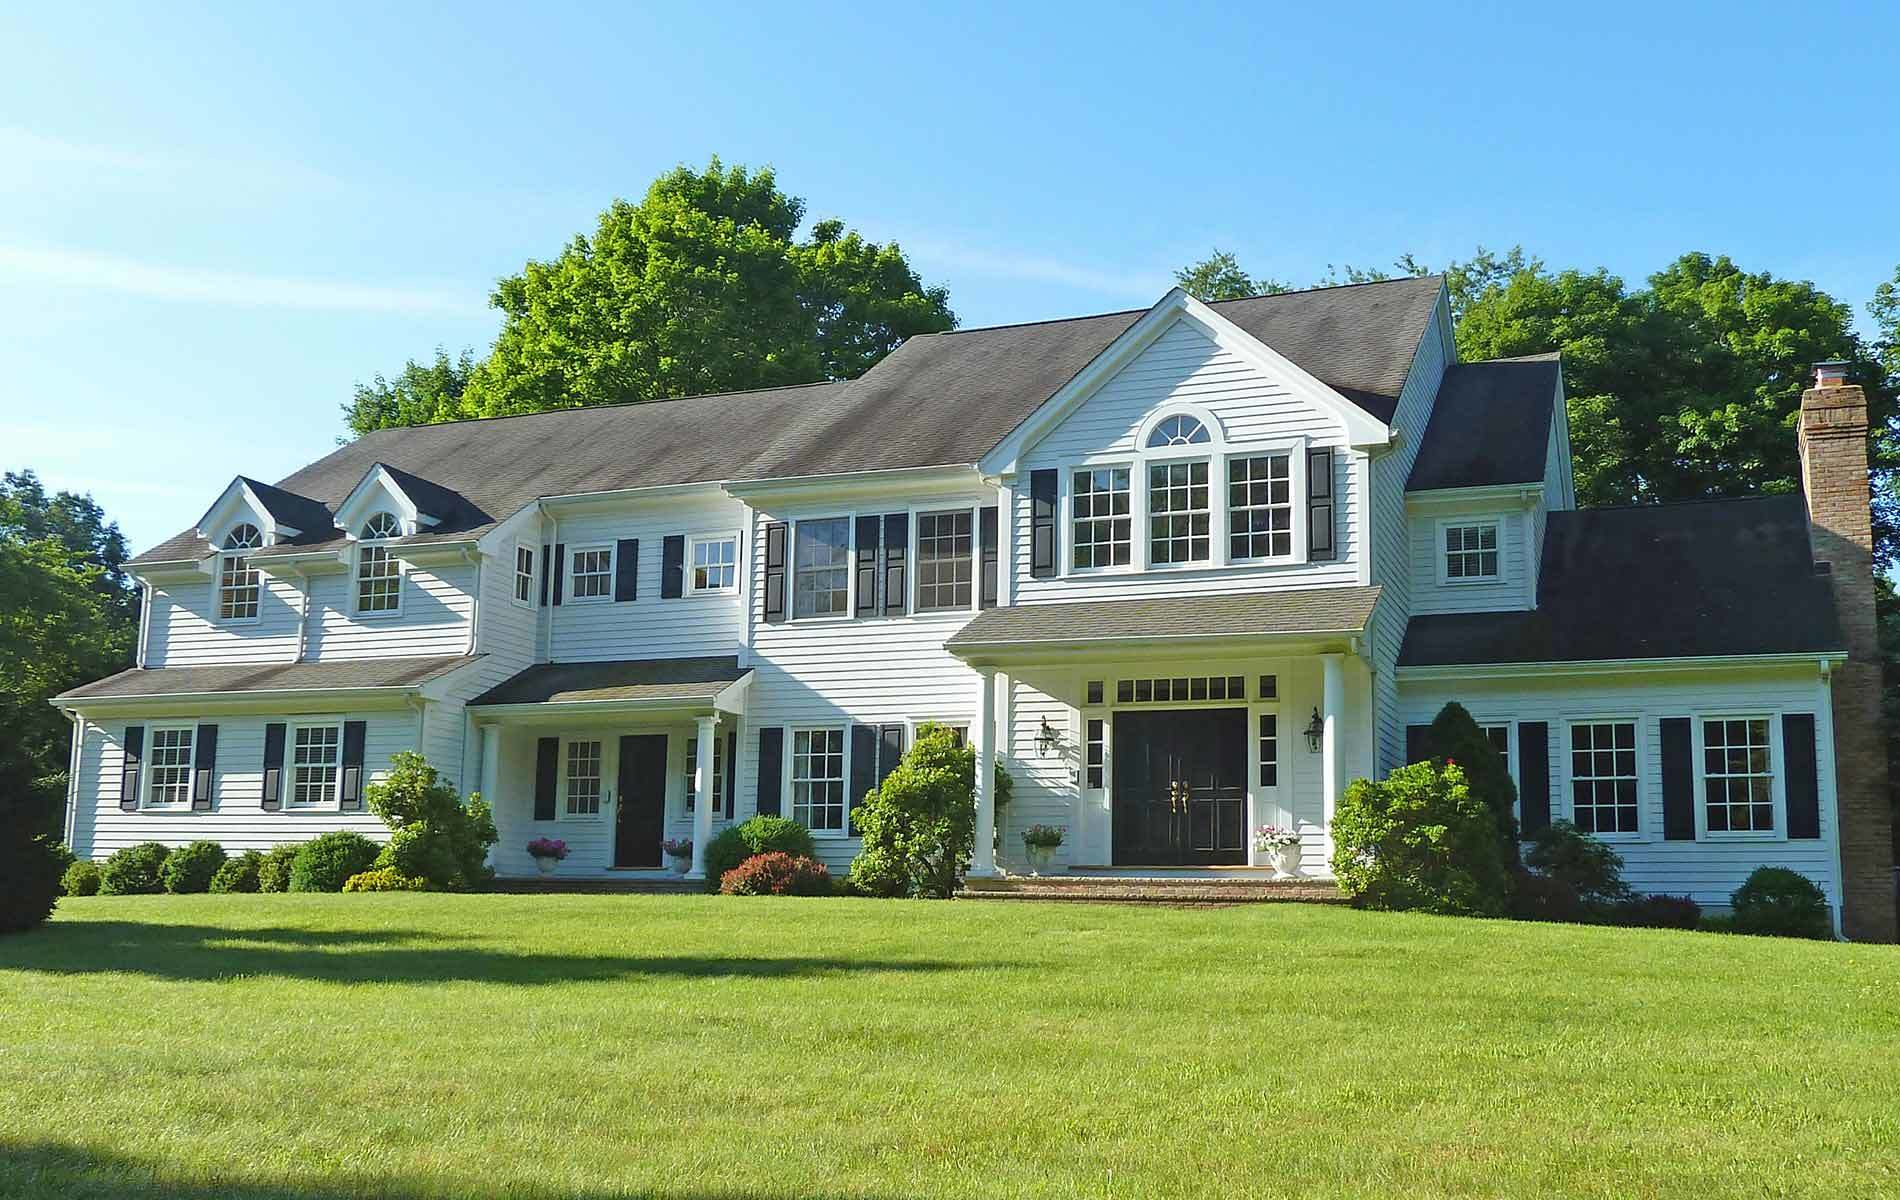 Colonial Homes for Sale in Westport - Connecticut -